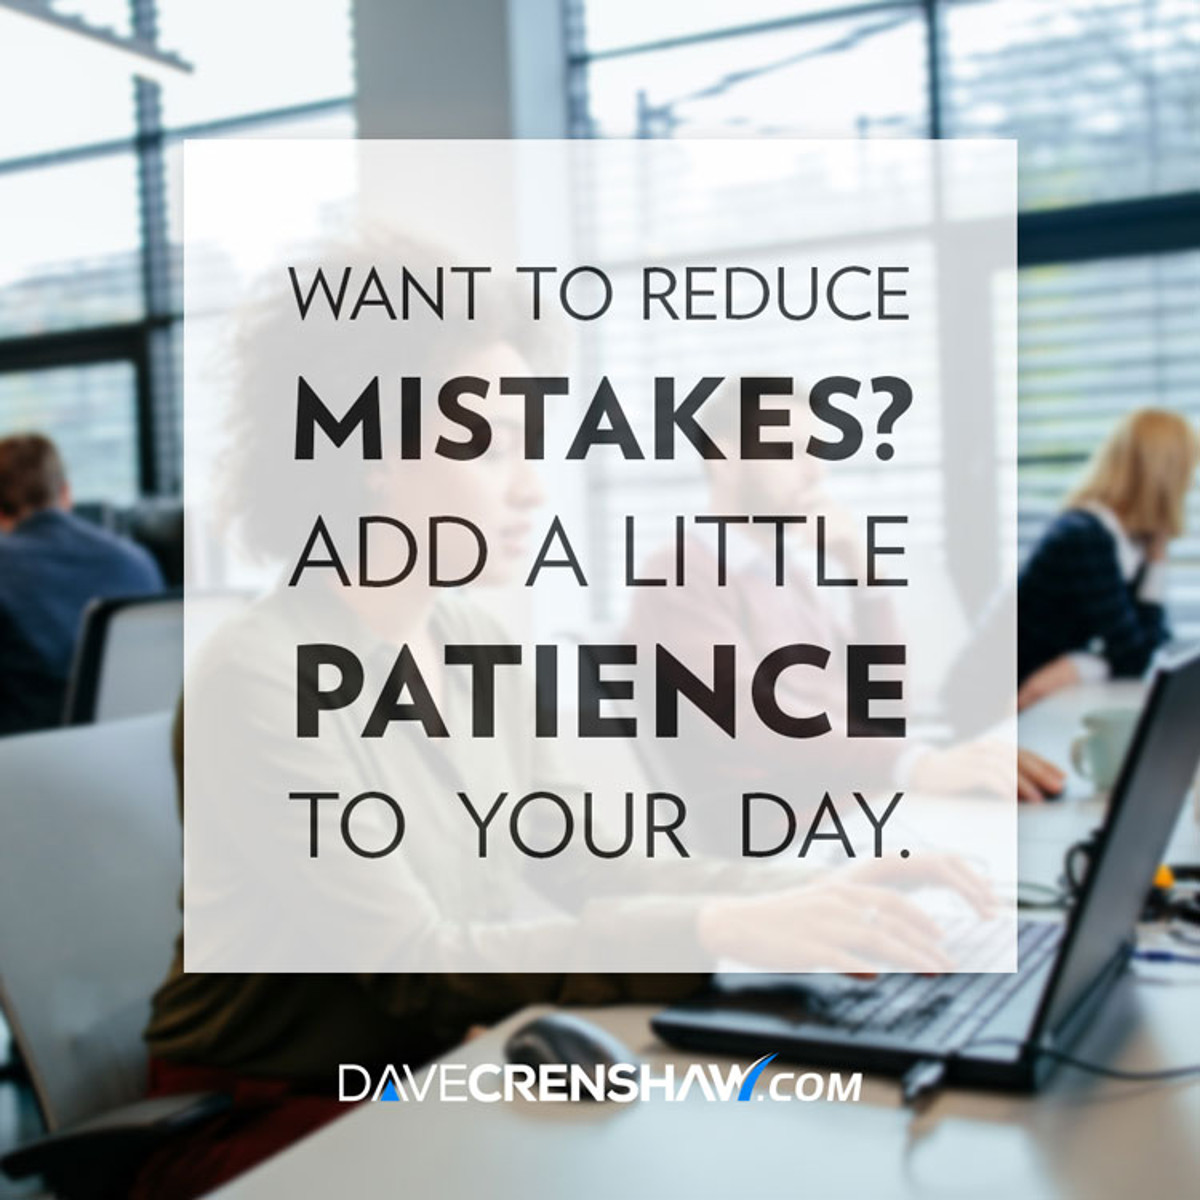 Want to reduce mistakes? Add a little patience to your day.